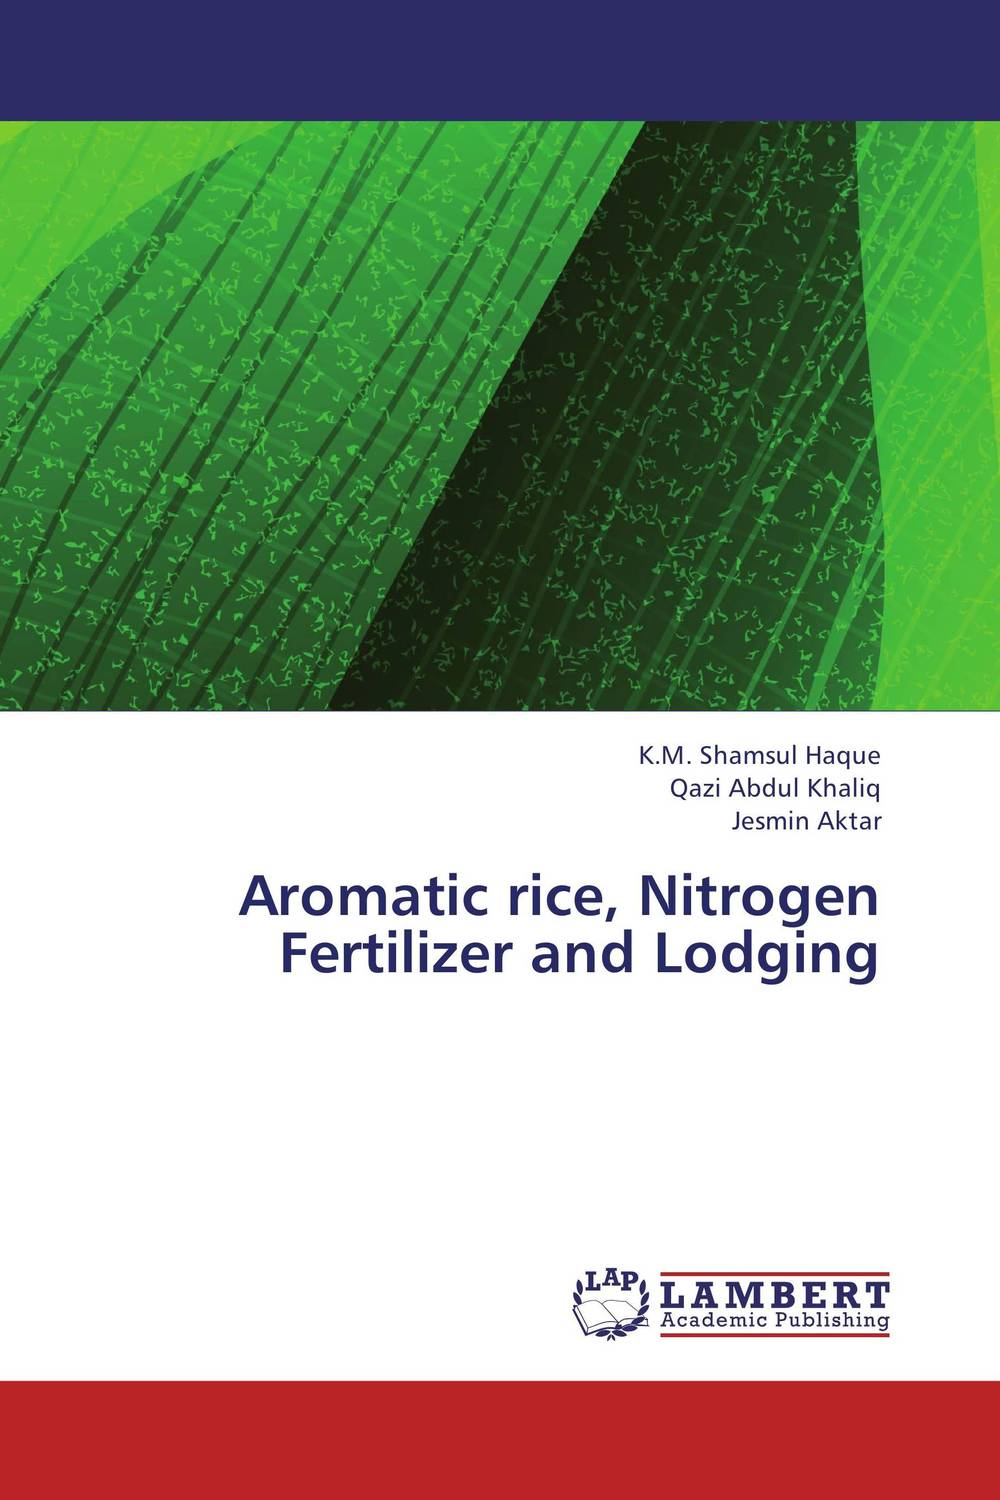 Aromatic rice, Nitrogen Fertilizer and Lodging rakesh kumar and shashank singh mechanical cultivation of rice under puddle and unpuddle condition